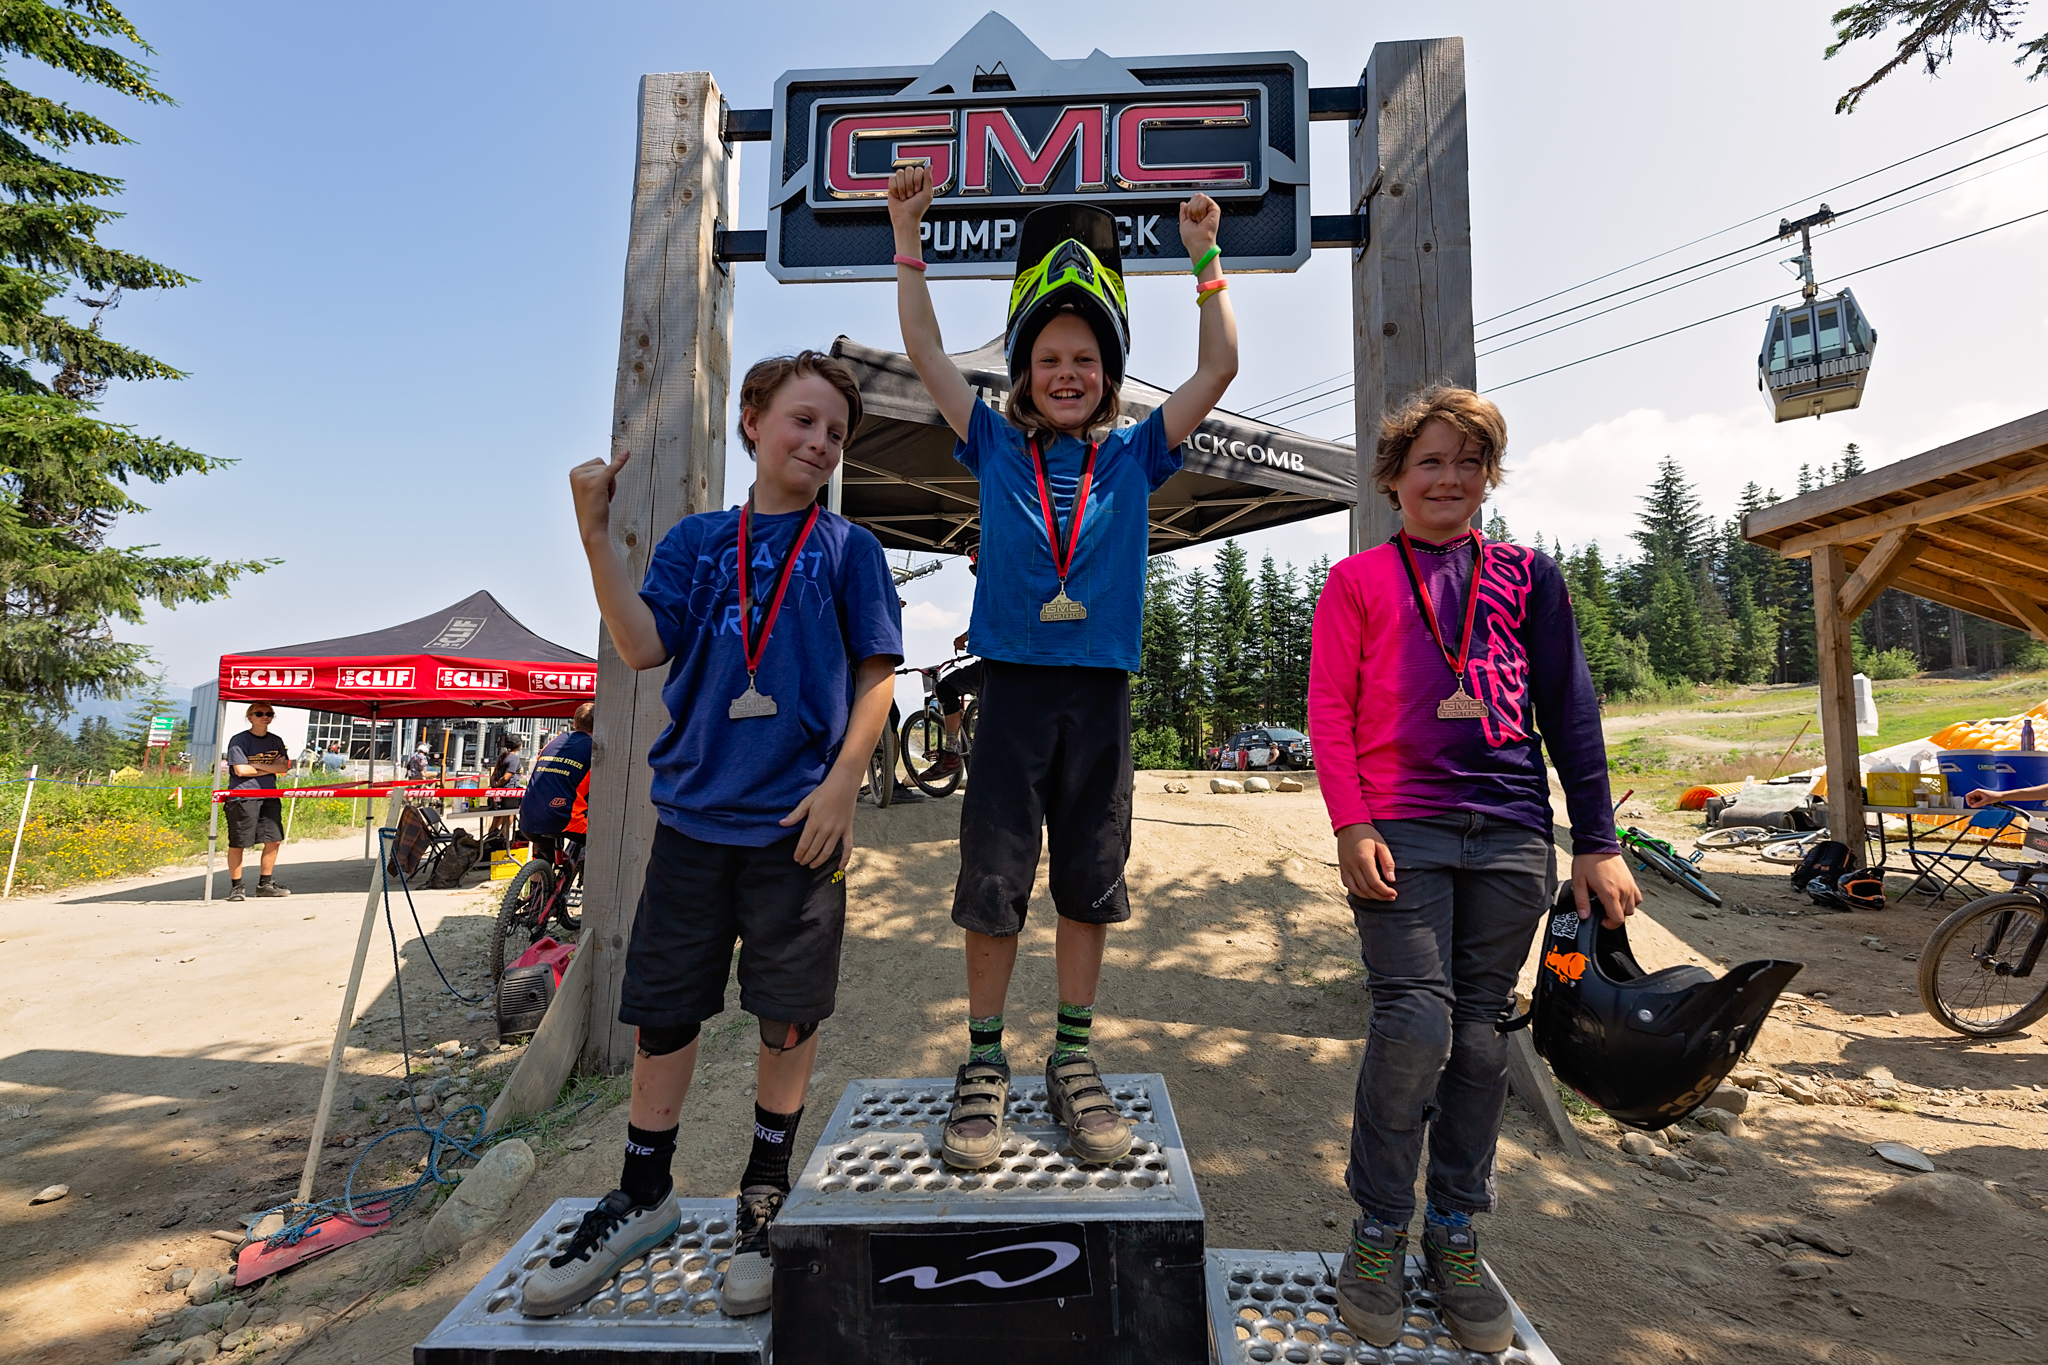 2018_0728_PumpTrack047-Edit.jpg